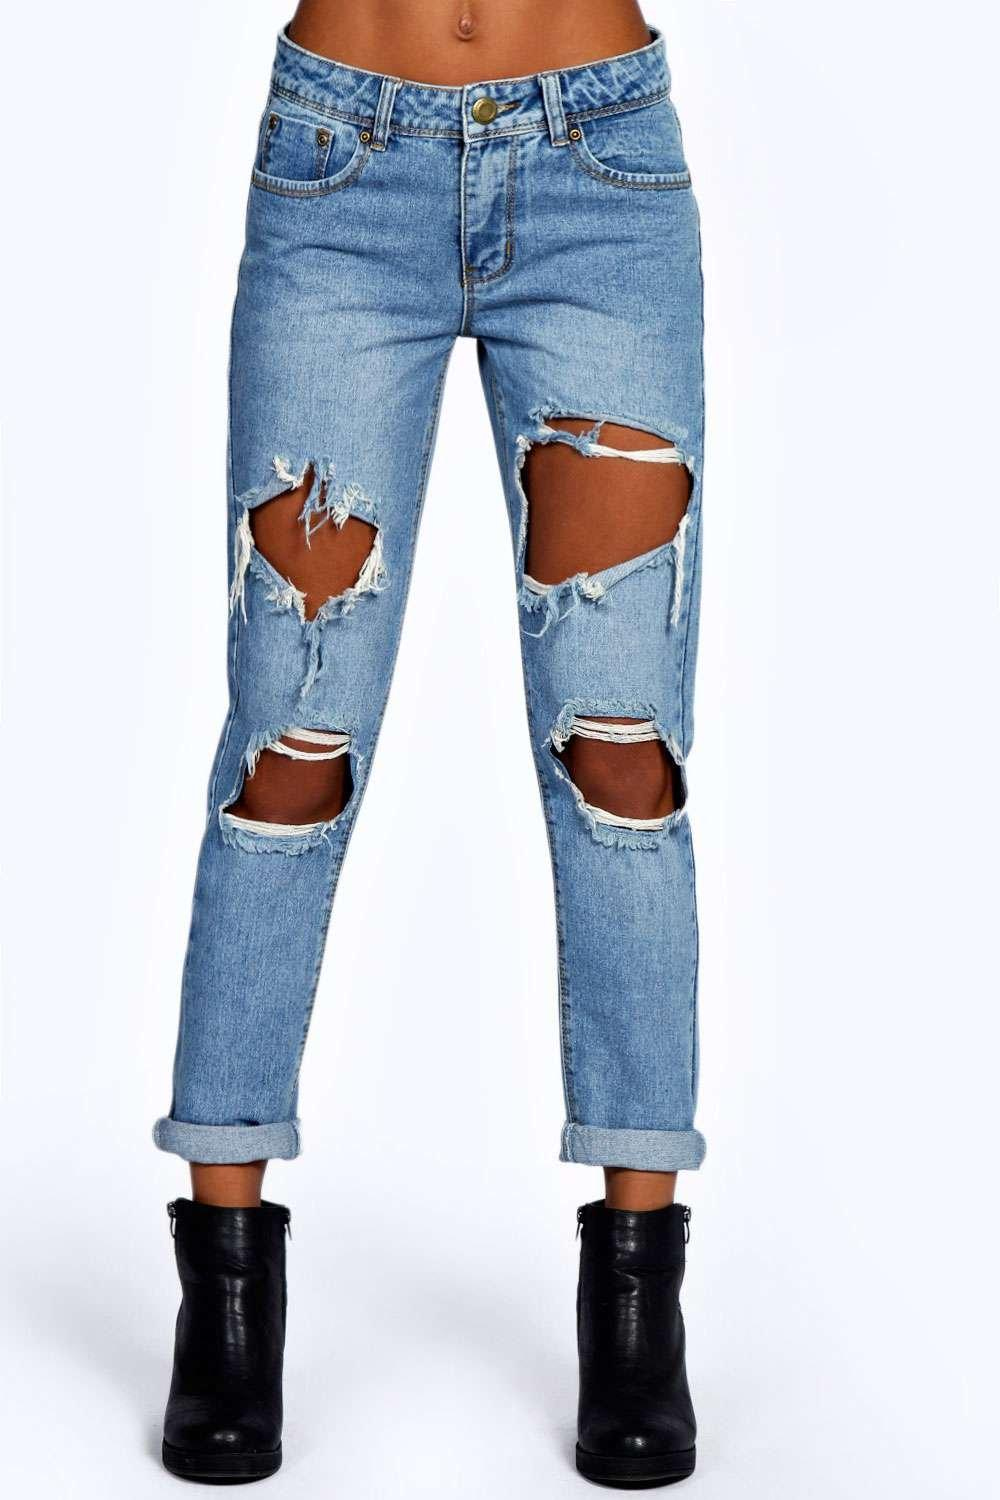 Find great deals on eBay for boyfriend jeans women. Shop with confidence.